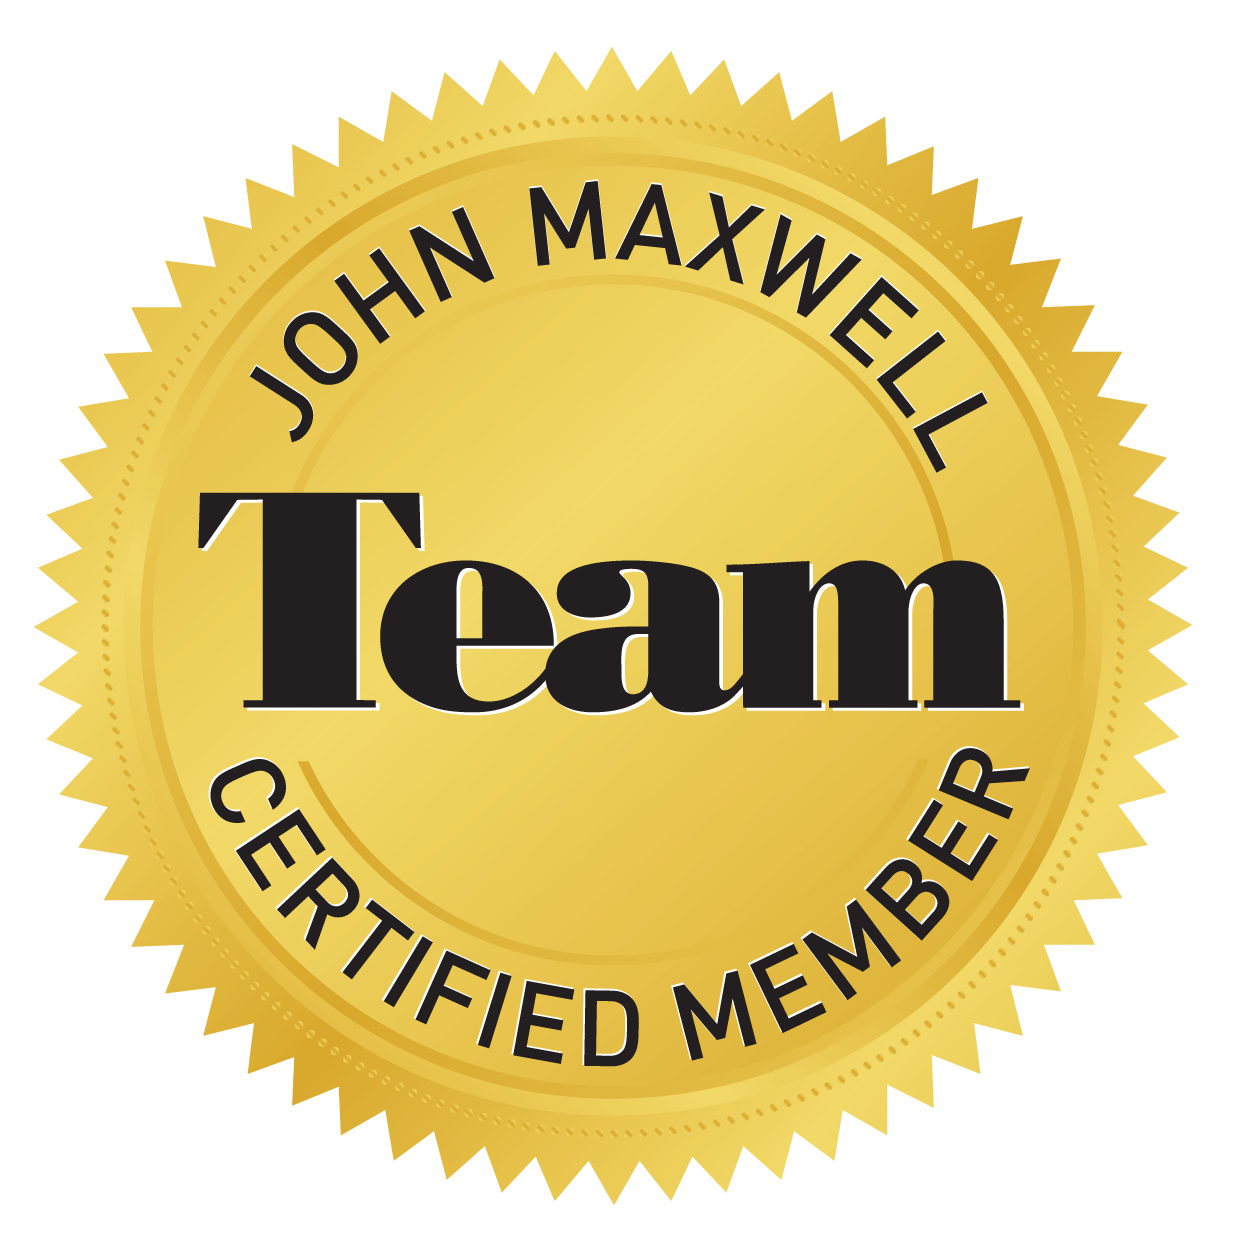 Dustin E James is a John Maxwell Team Certified Speaker